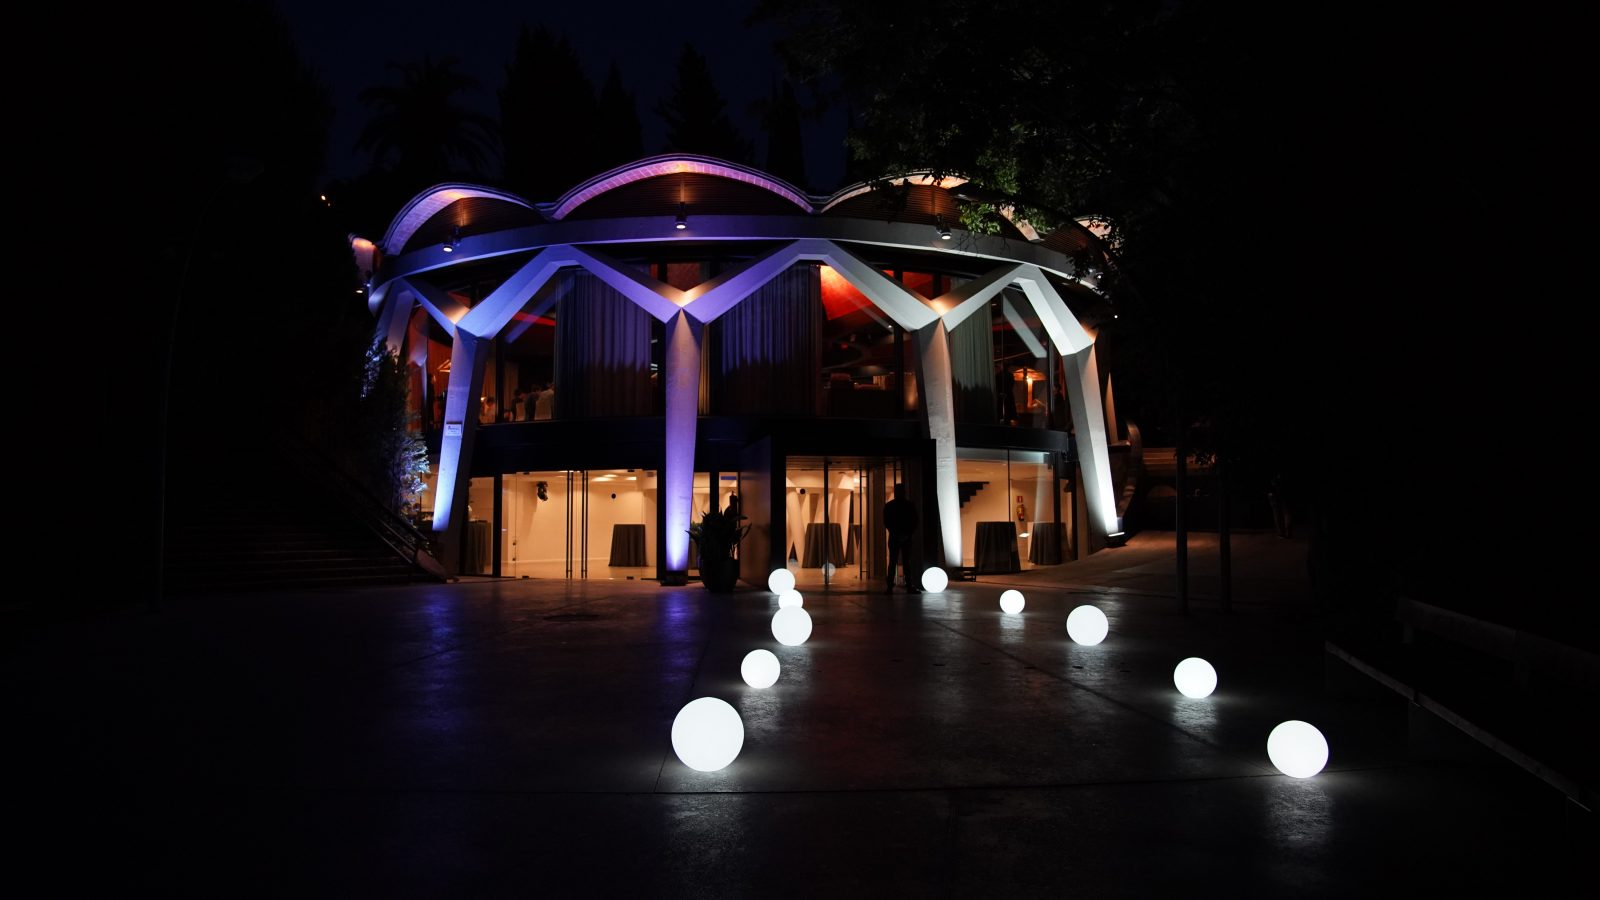 Barcelona venue at night with lights in Montjuic area